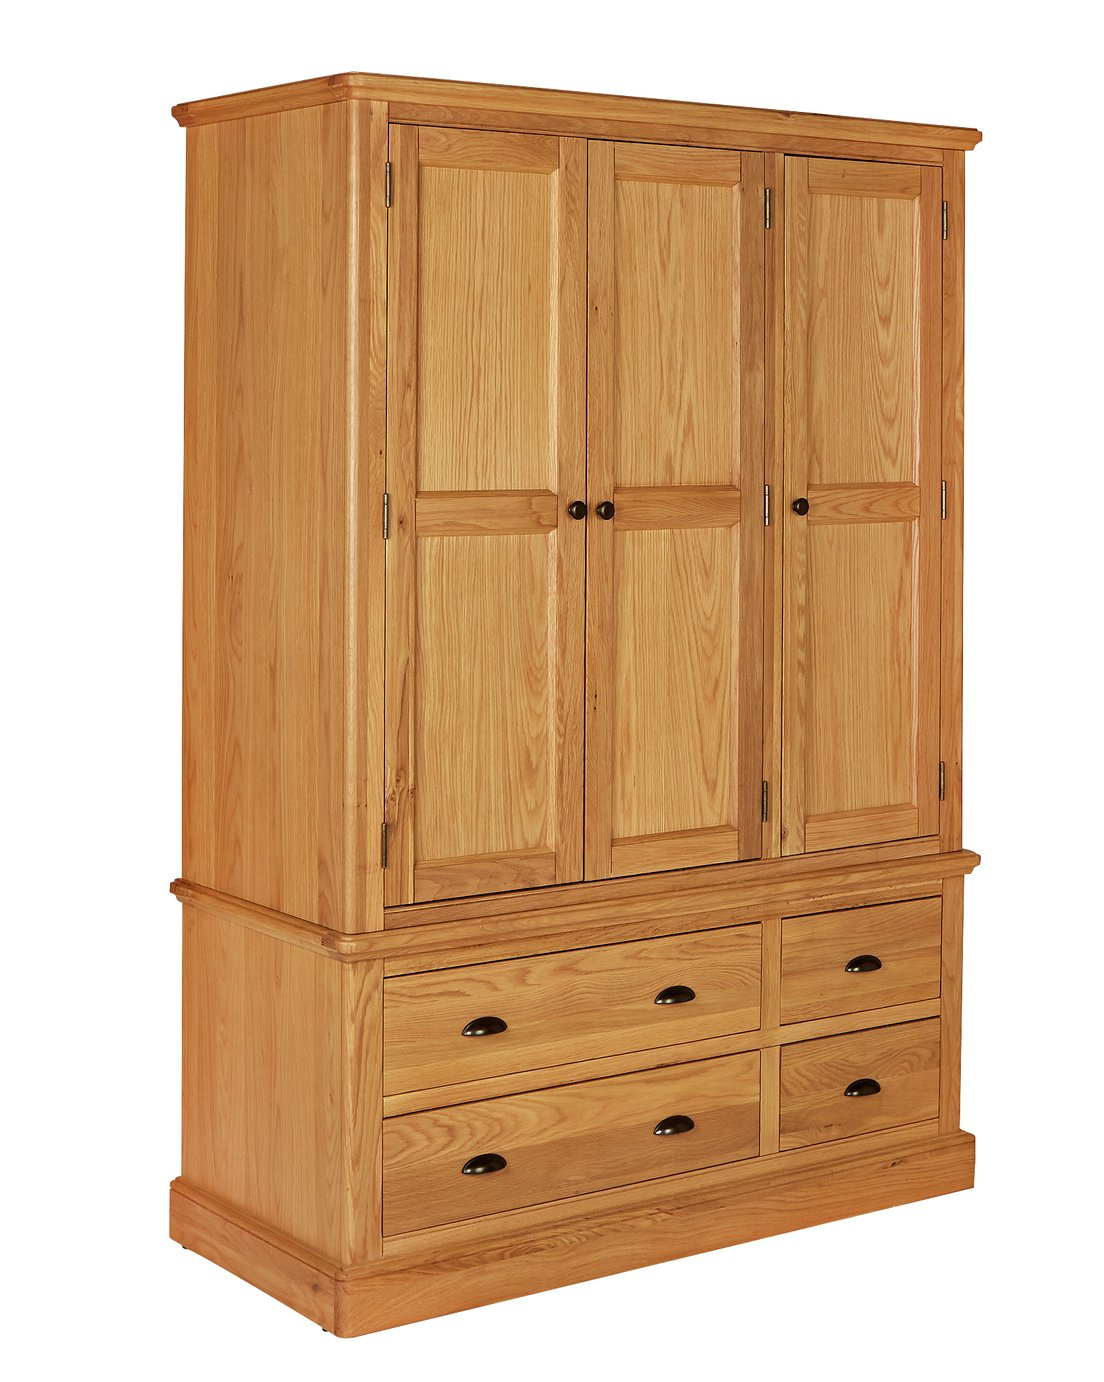 Argos Home Oakham Oak & Veneer 3 Door 4 Drawer Wardrobe